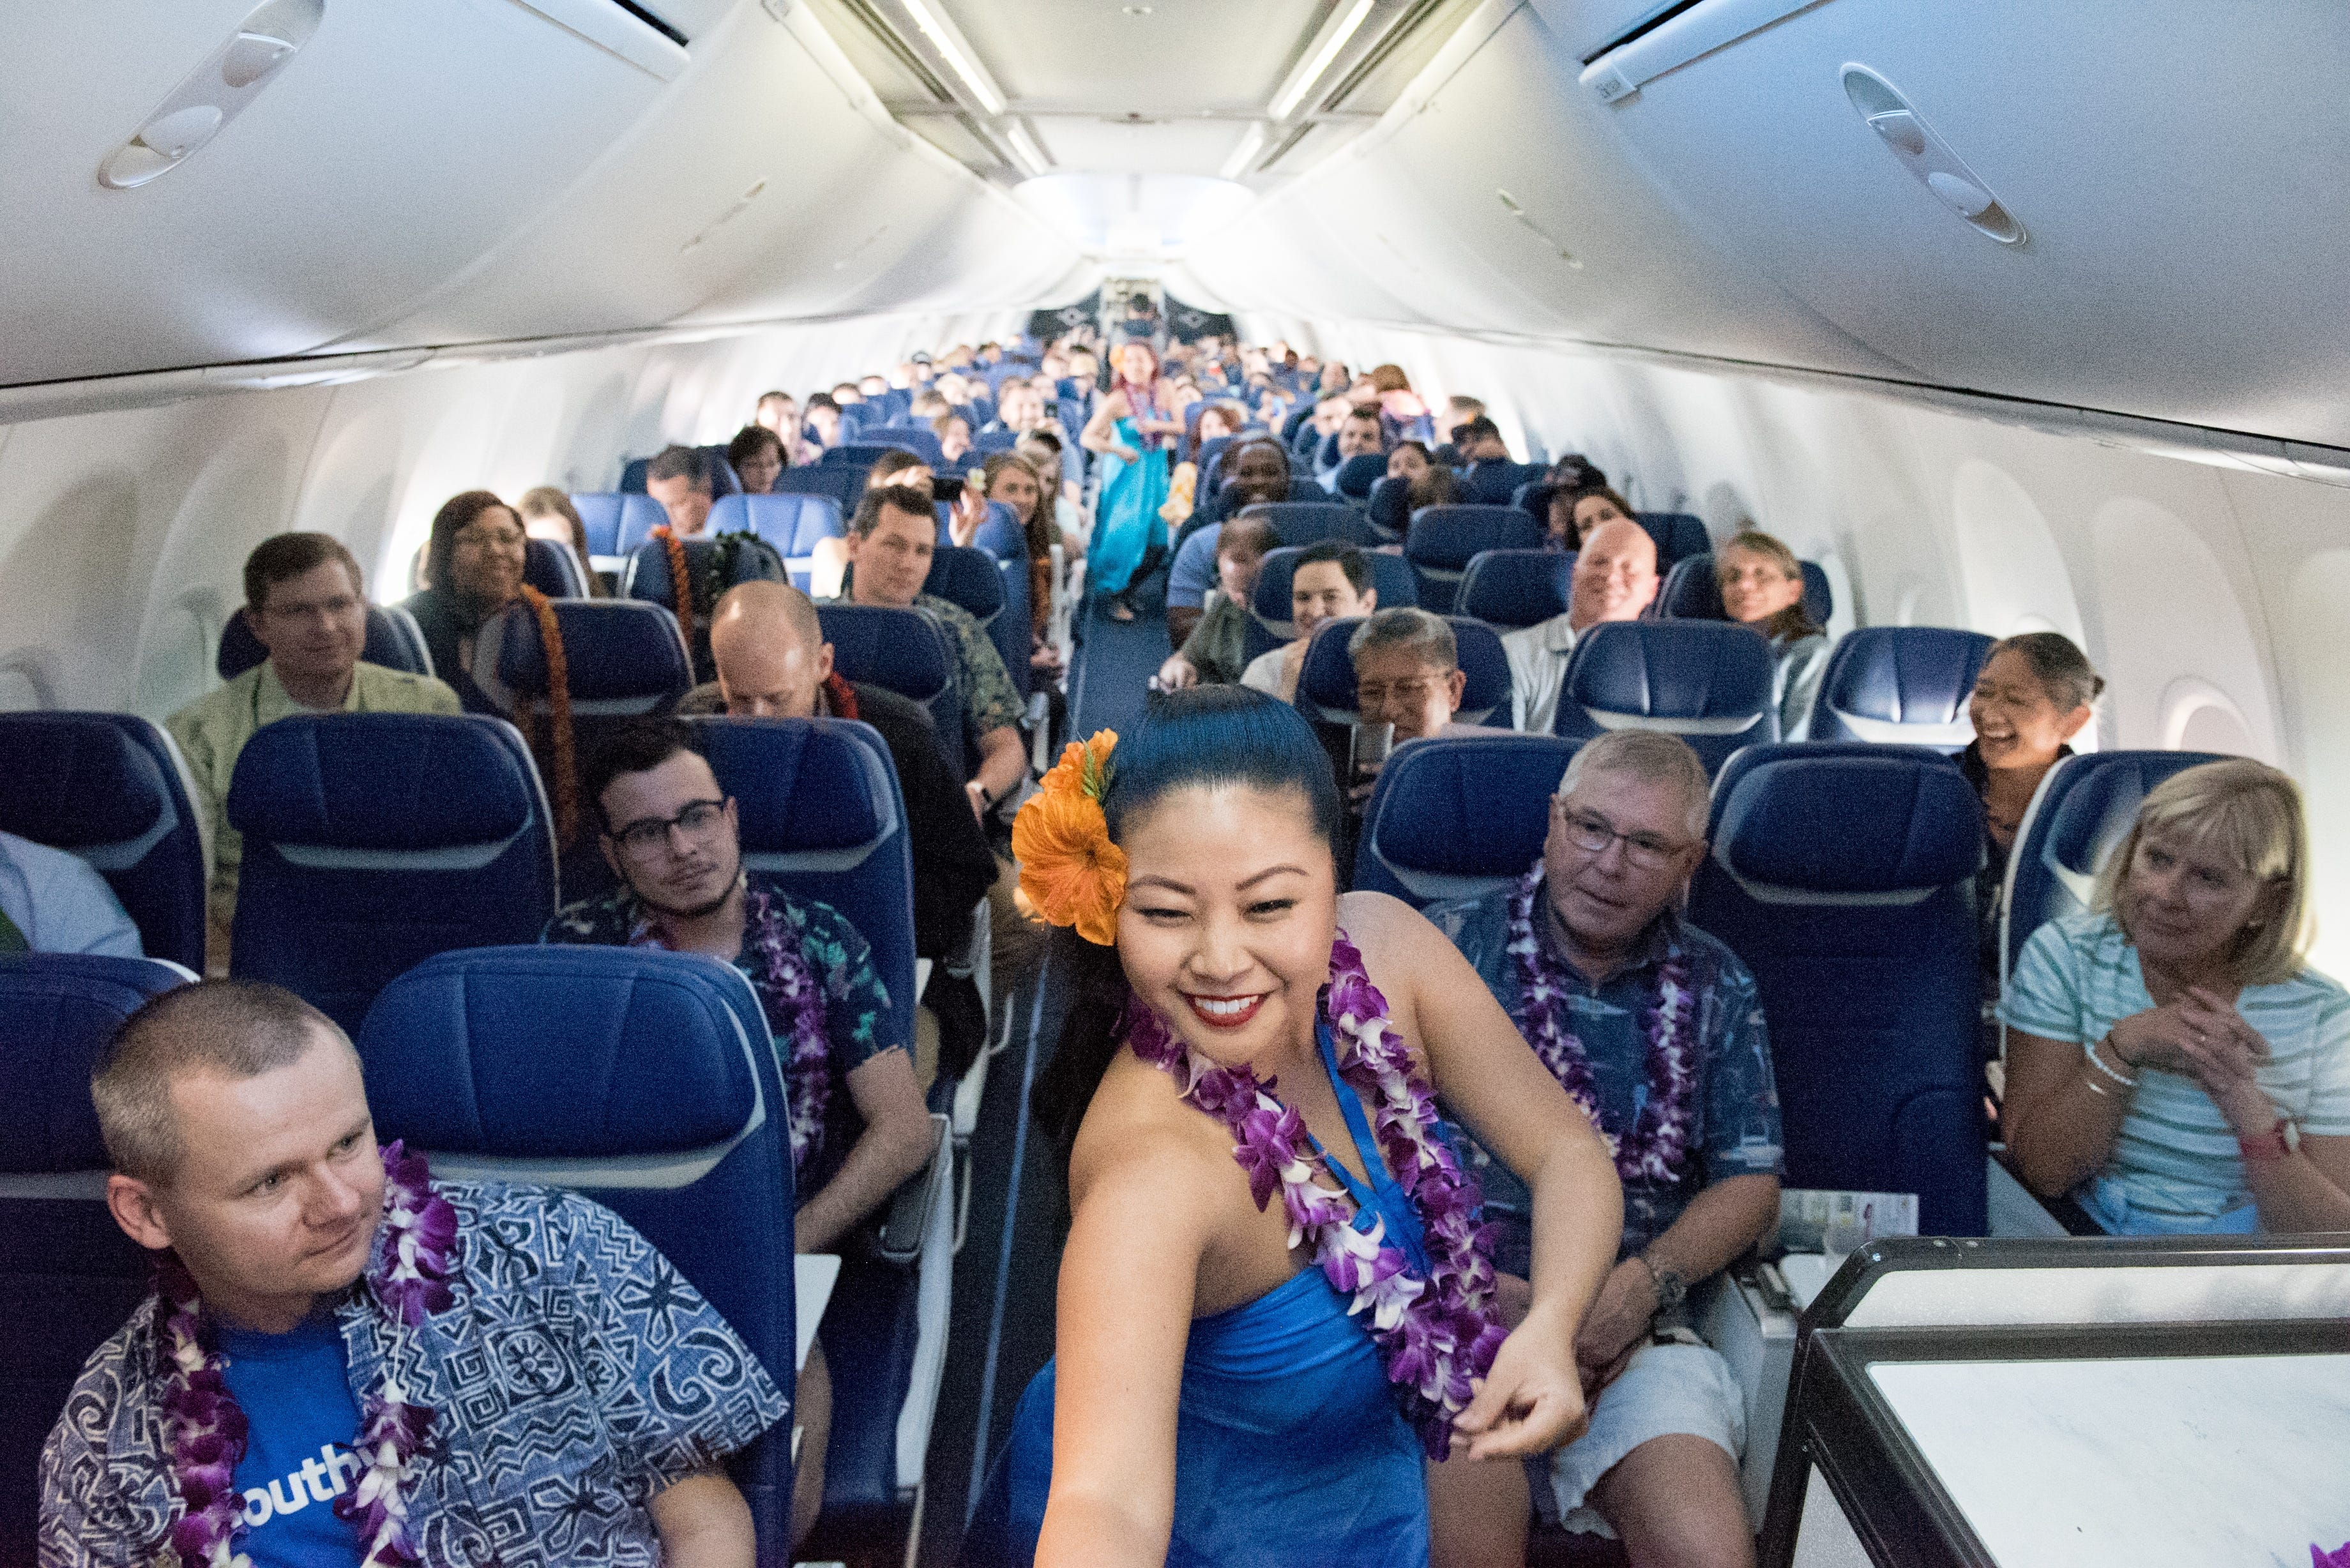 Slide 16 of 17: Southwest Airlines debuted service to Hawaii in March 2019.